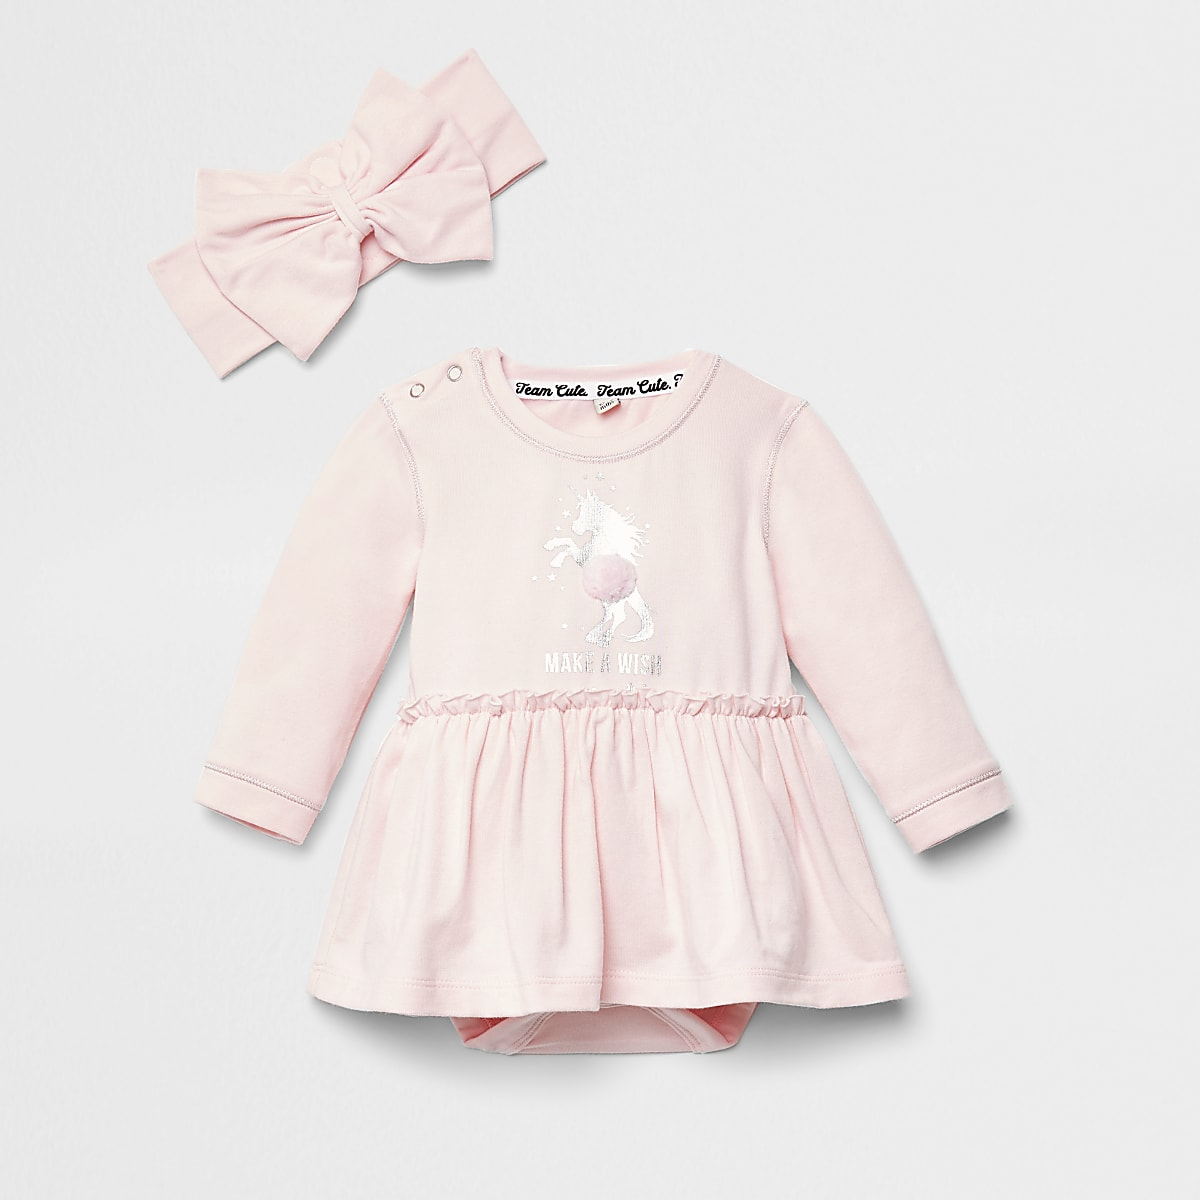 Baby pink unicorn print romper dress